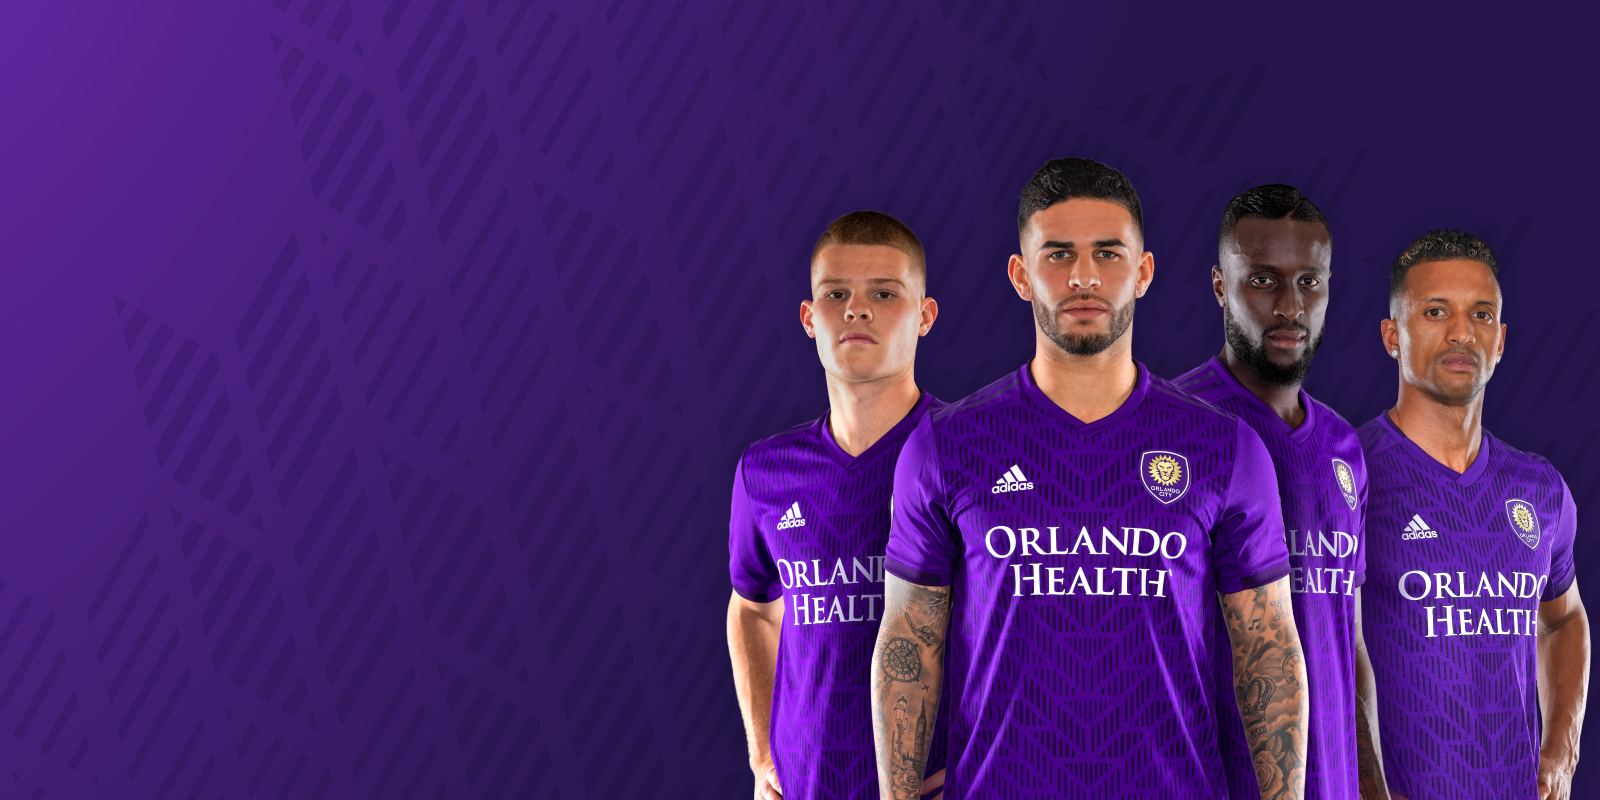 Orlando City Soccer Club players